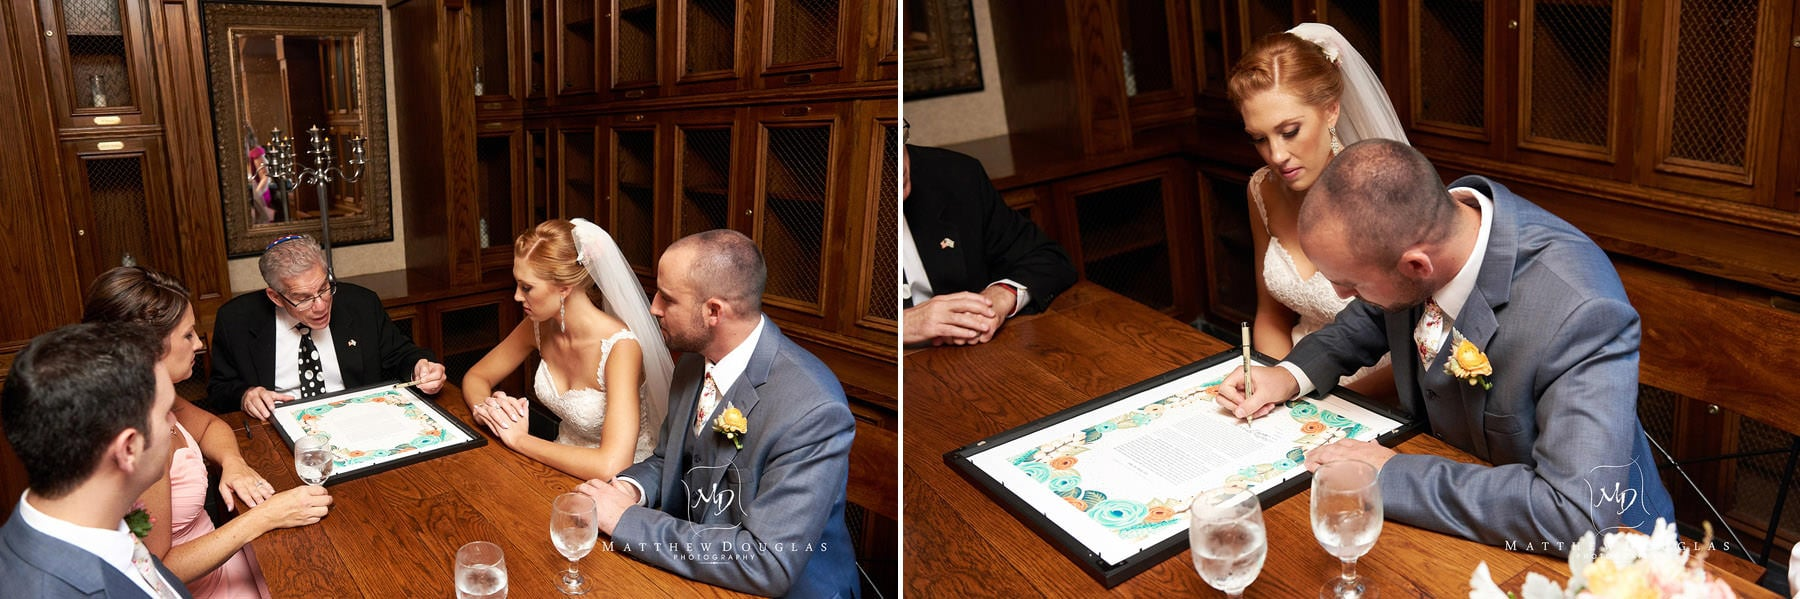 sigining the ketubah at The Farmhouse at The Grand Colonial